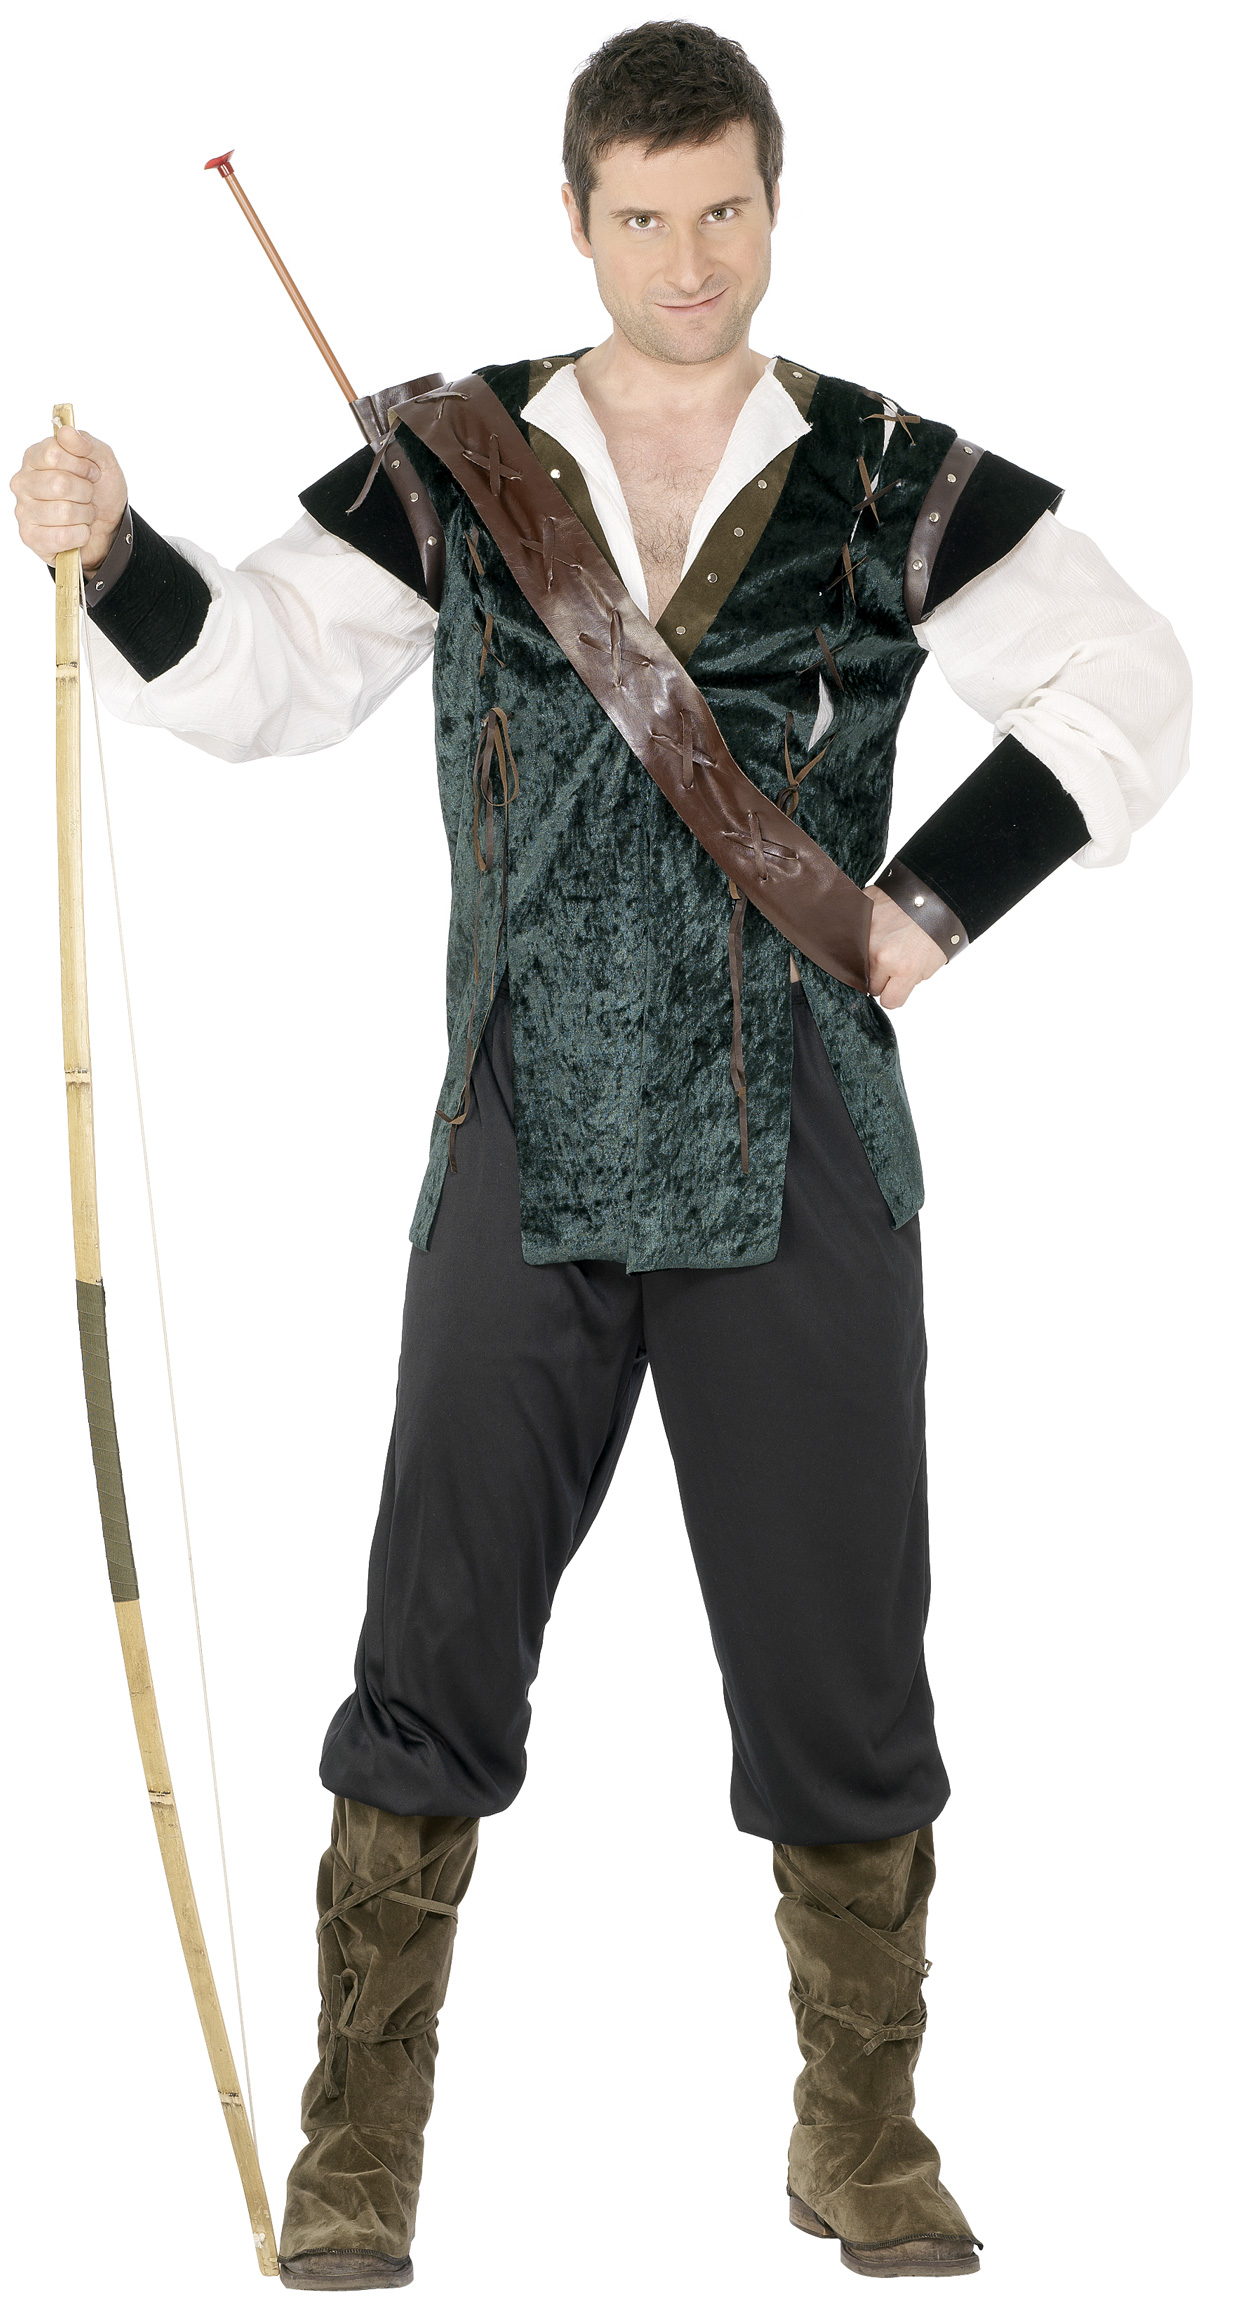 Costume for archer from the middle ages for men